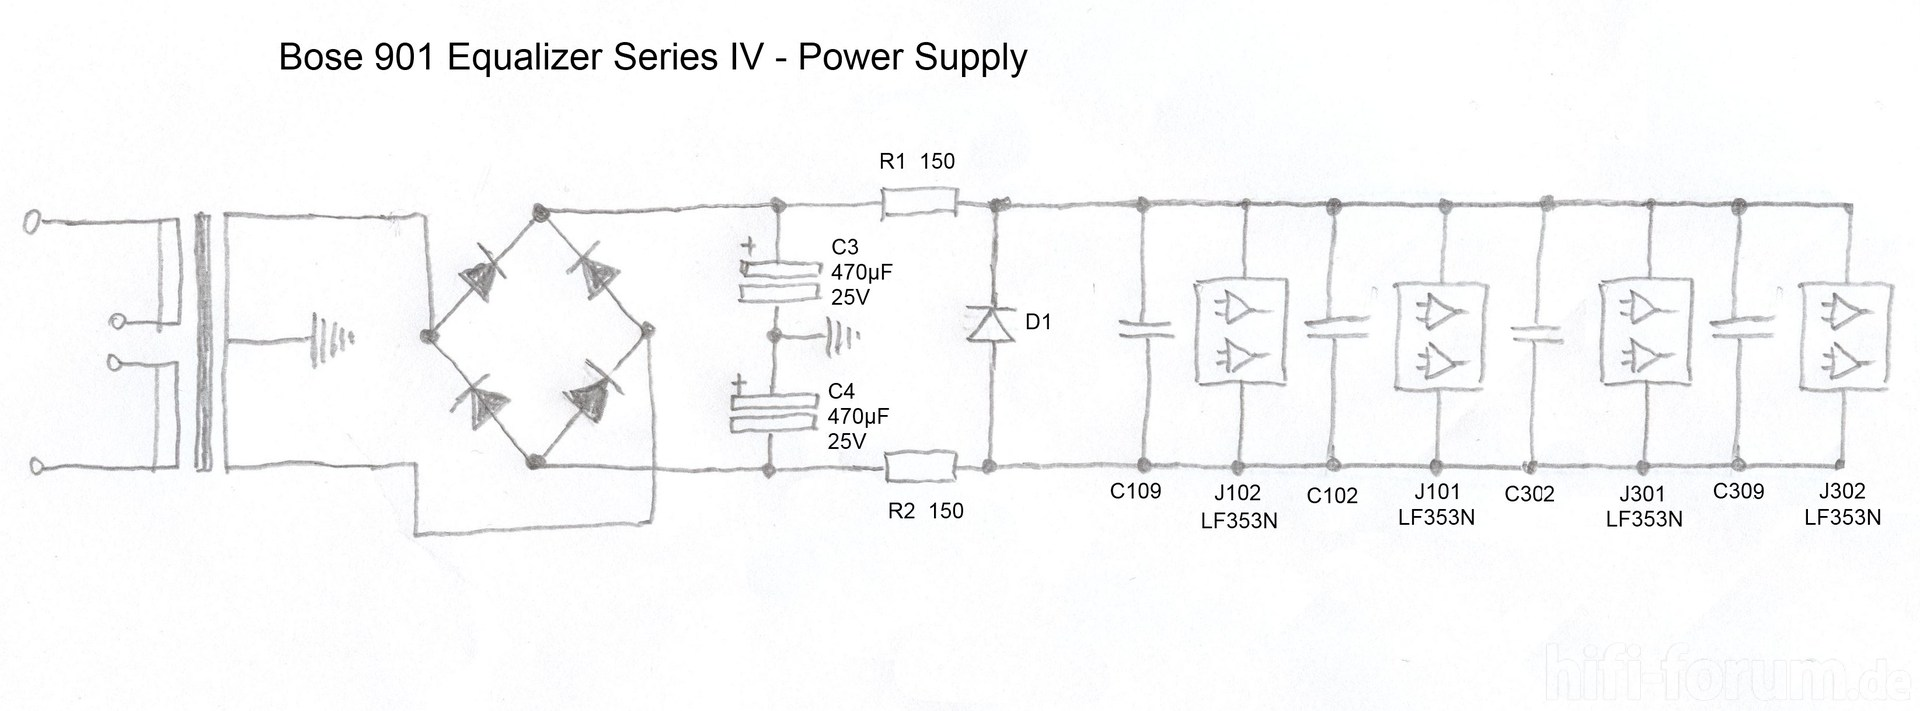 hight resolution of  bose 901 equalizer iv schematic detail power supply 214315 bose 901 equalizer schematic bose 901 wiring diagram